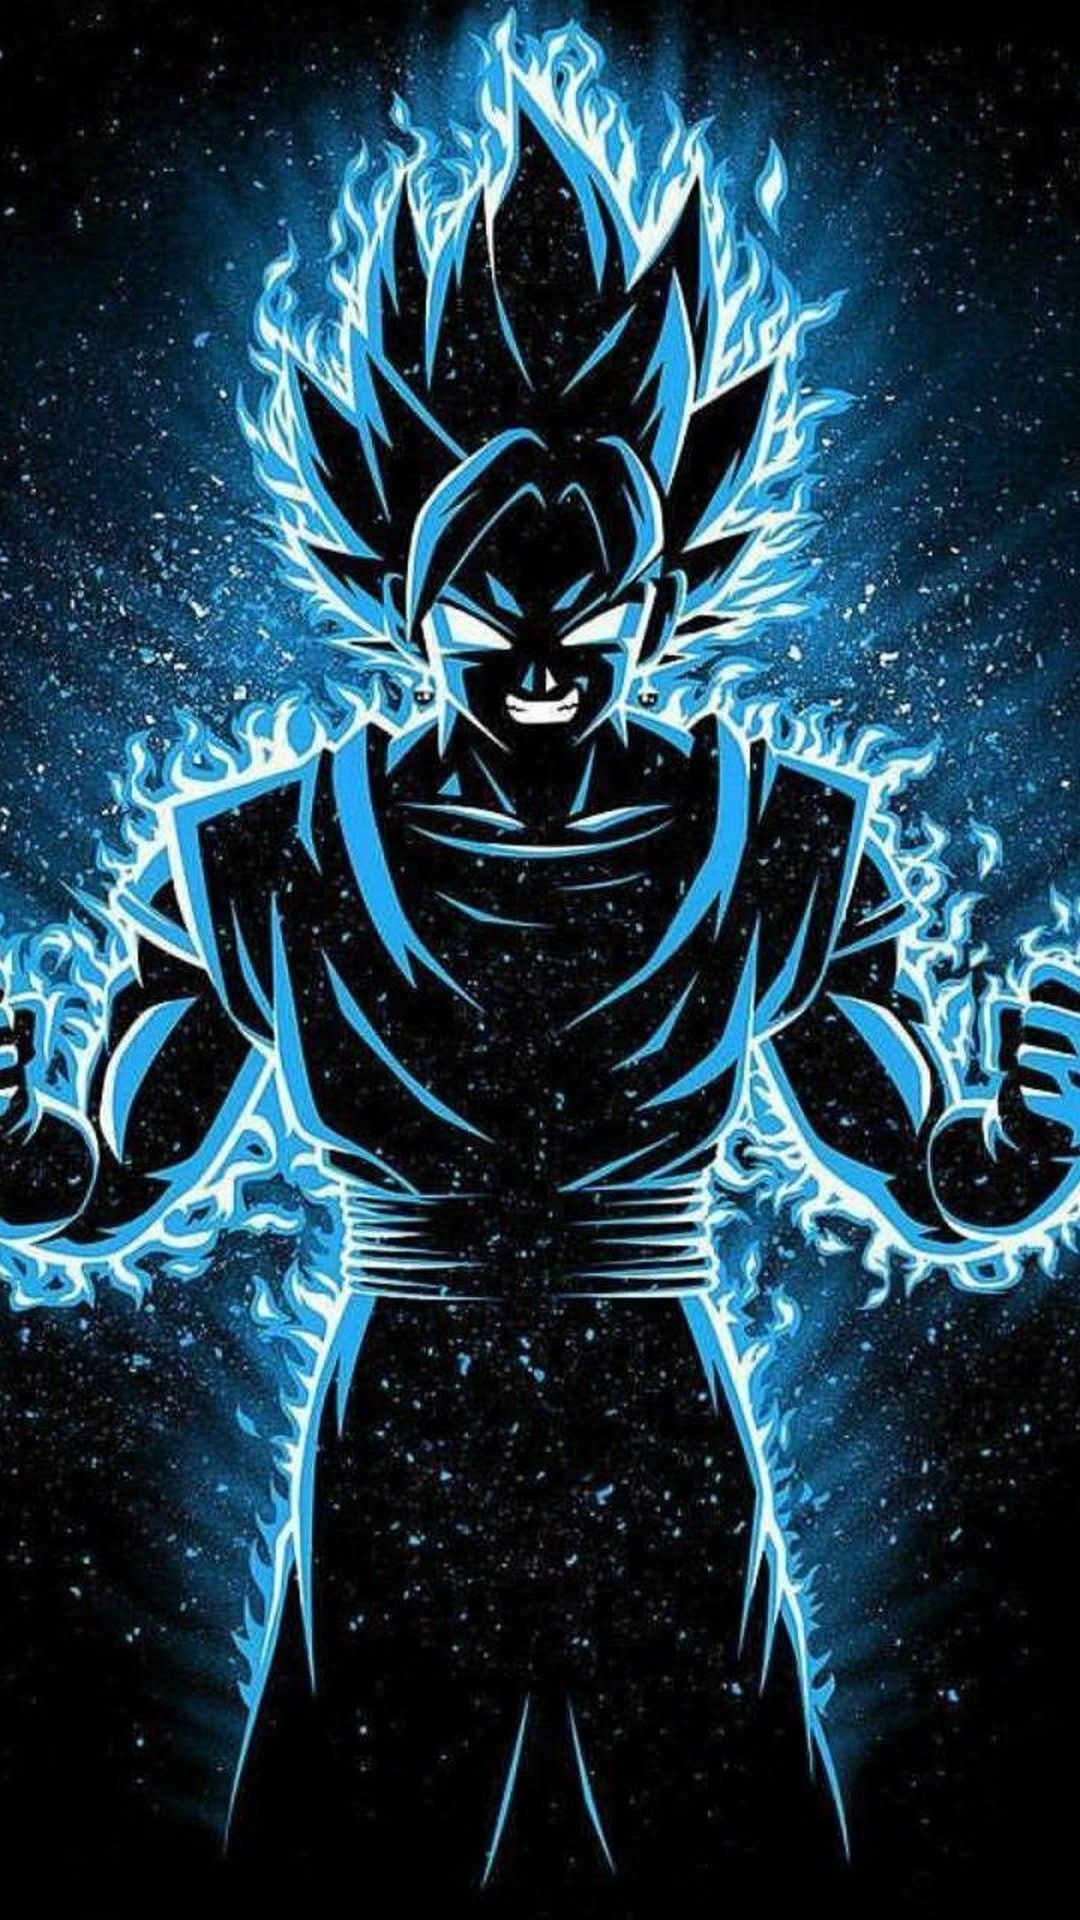 Black Dbz Wallpaper Download In 2020 Dragon Ball Wallpapers Goku Wallpaper Anime Dragon Ball Super